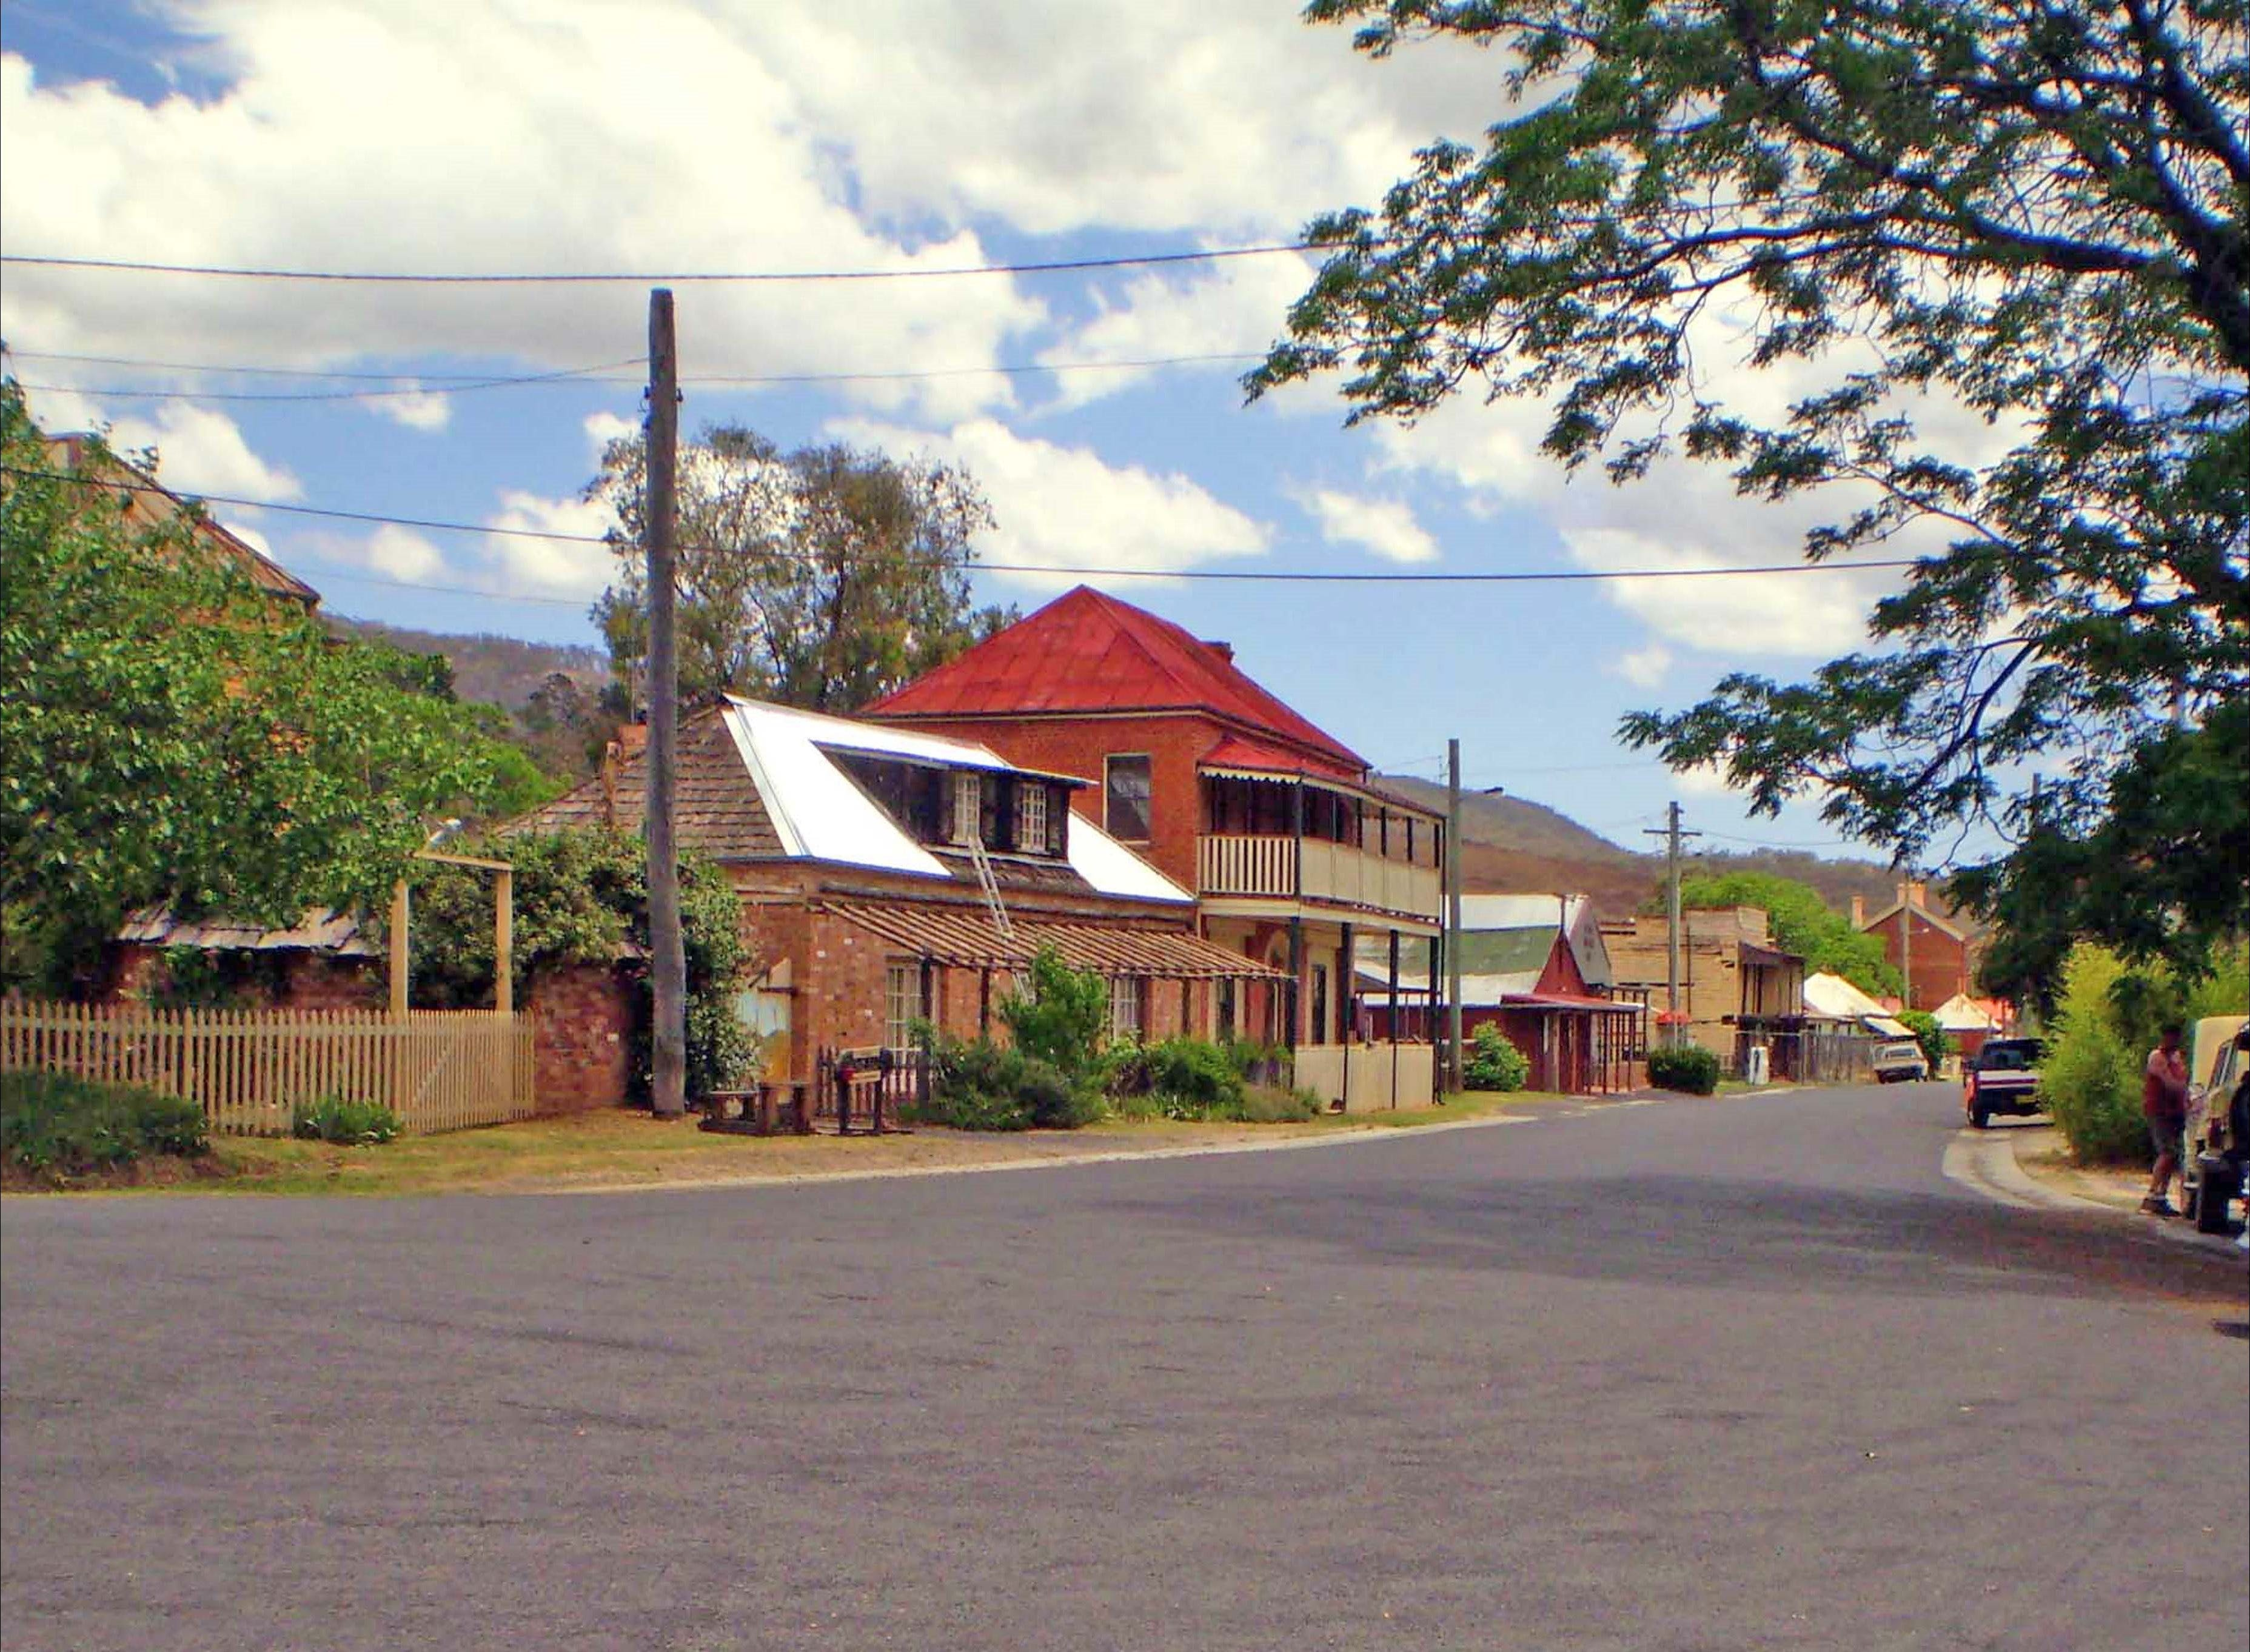 Sofala and District Agriculture and Horticulture Show - WA Accommodation